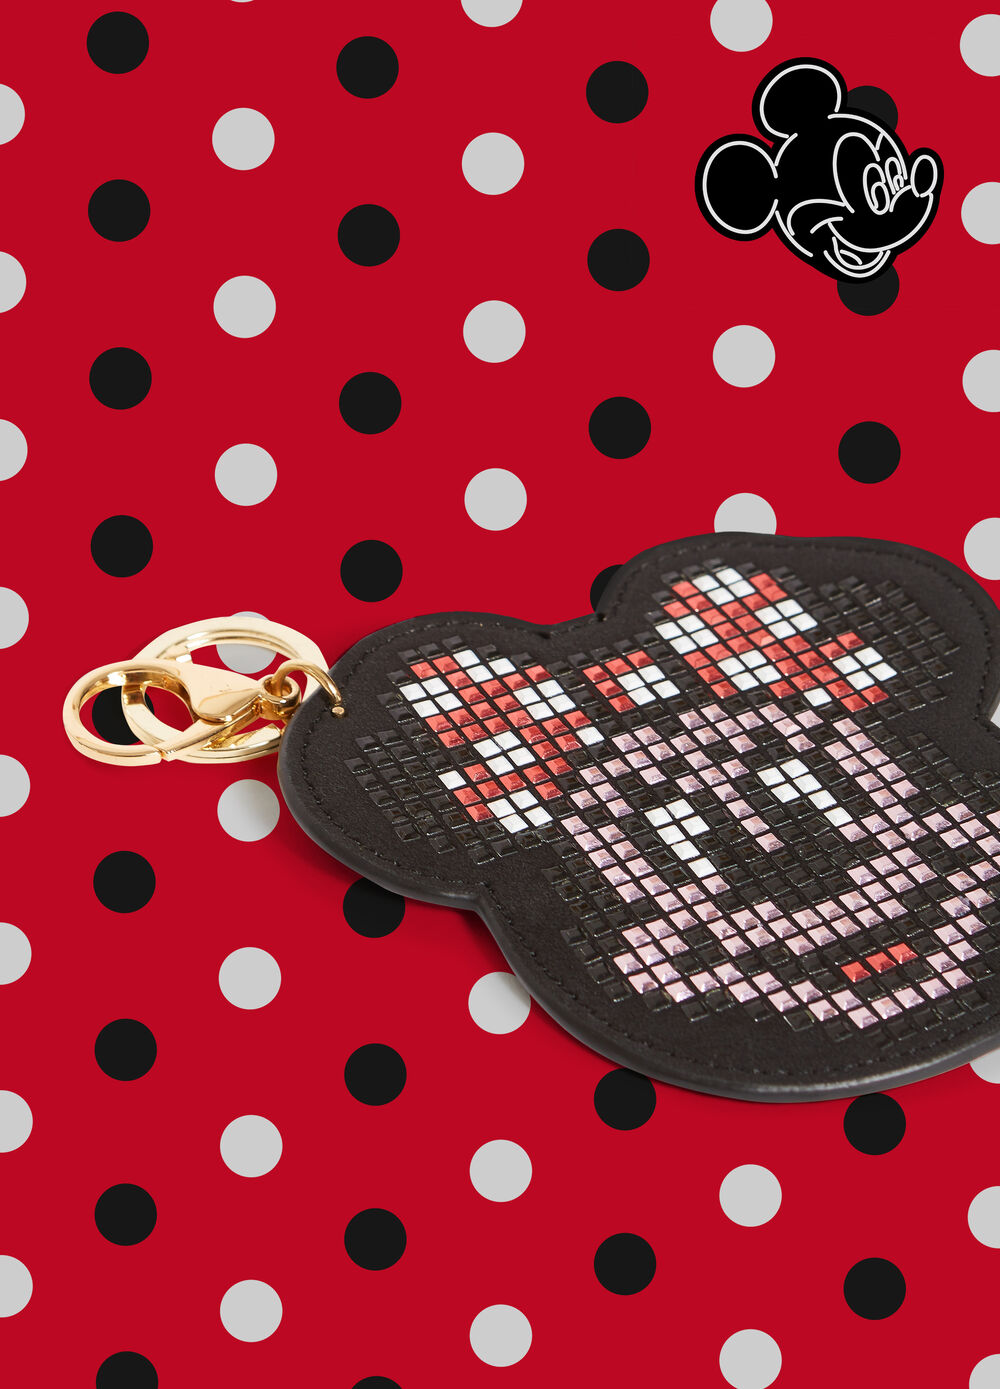 Minnie Mouse keyring with studs